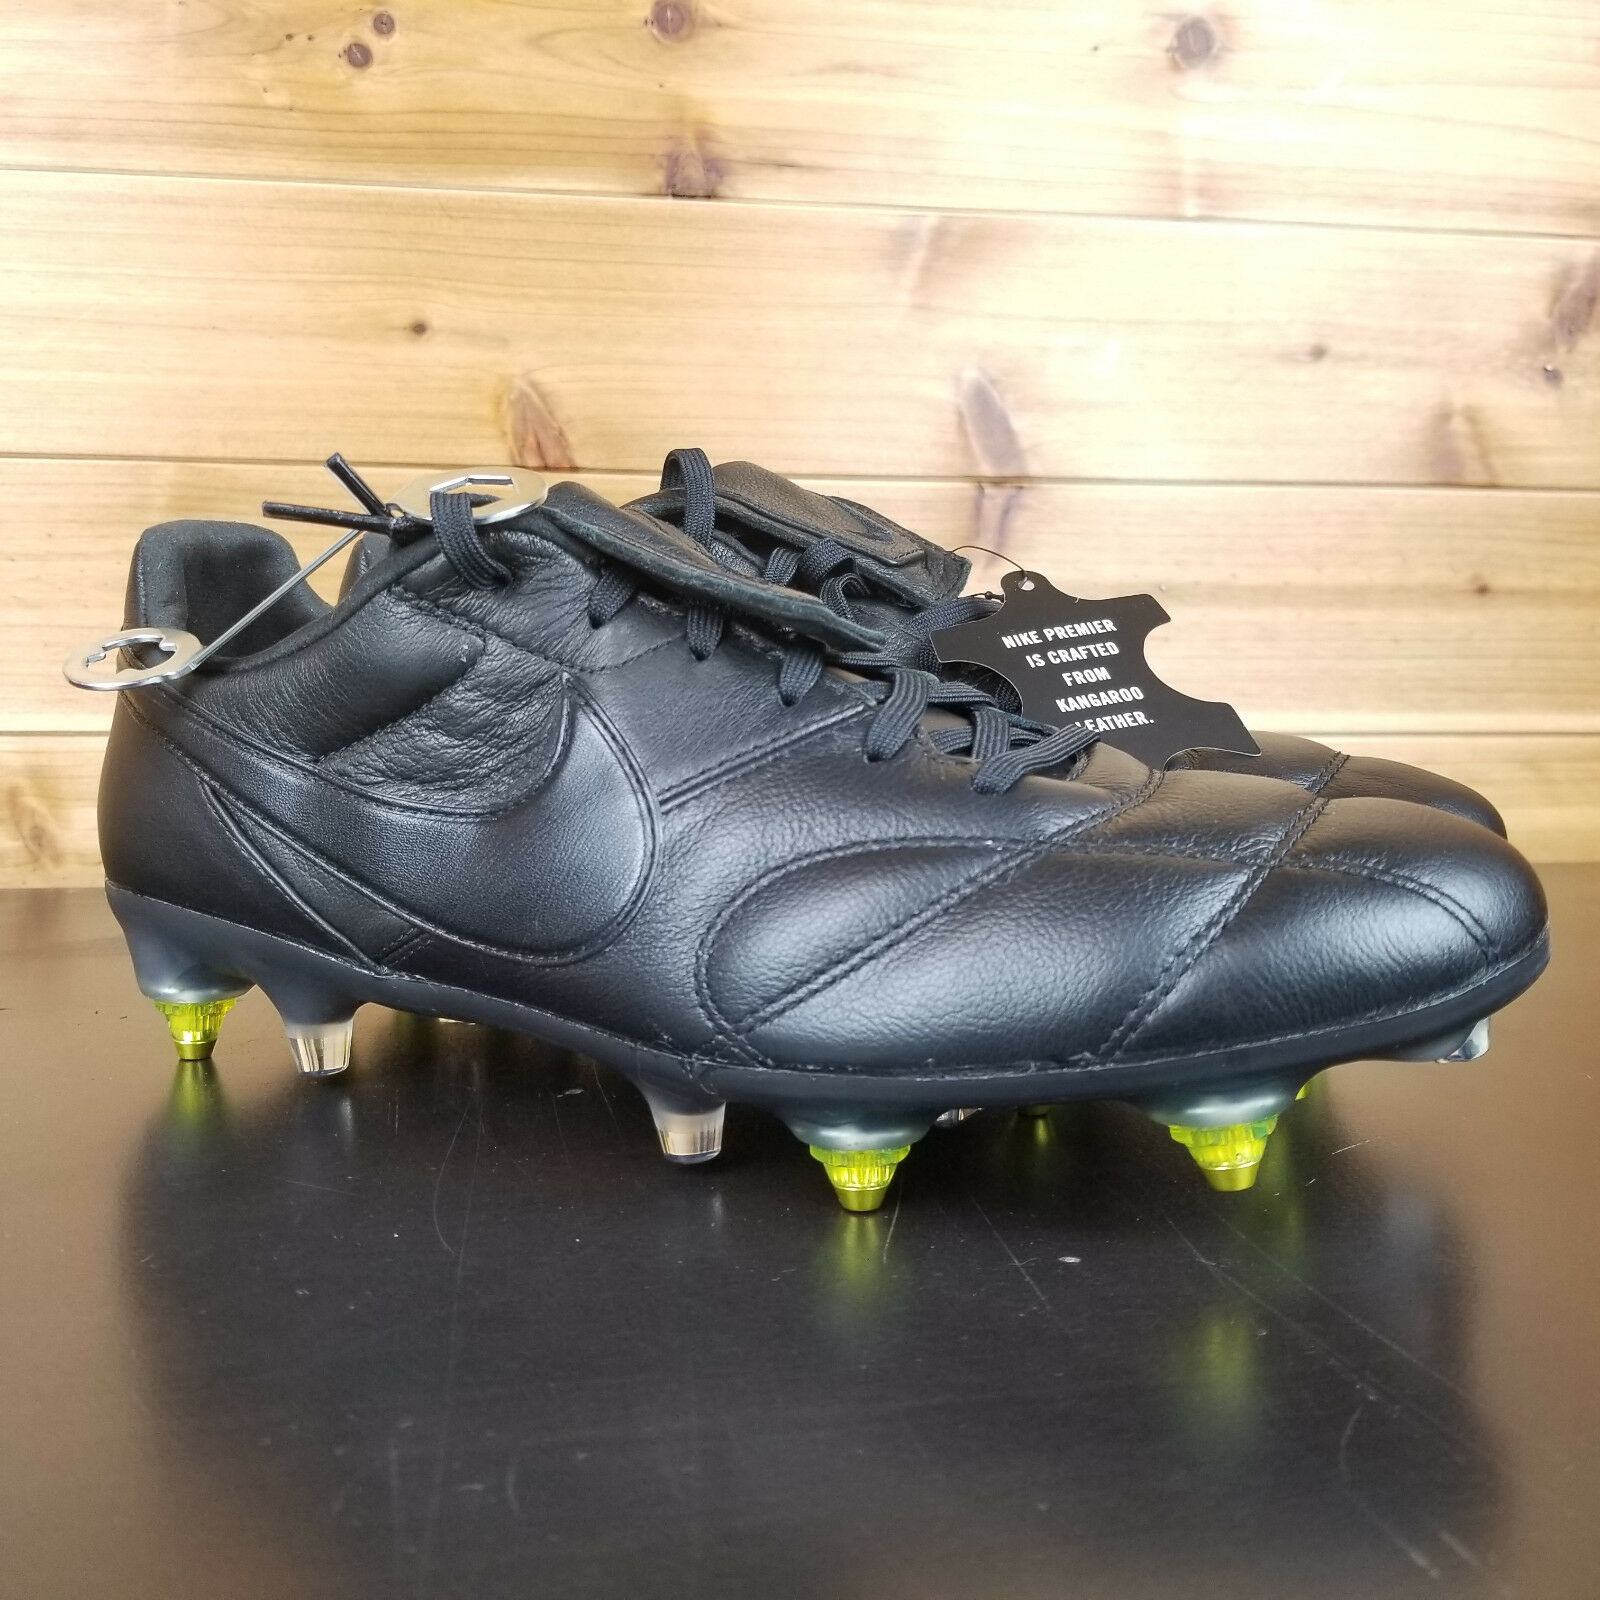 Nike The Nike Premier II SG-PRO AC Men's Soccer Cleats 92139